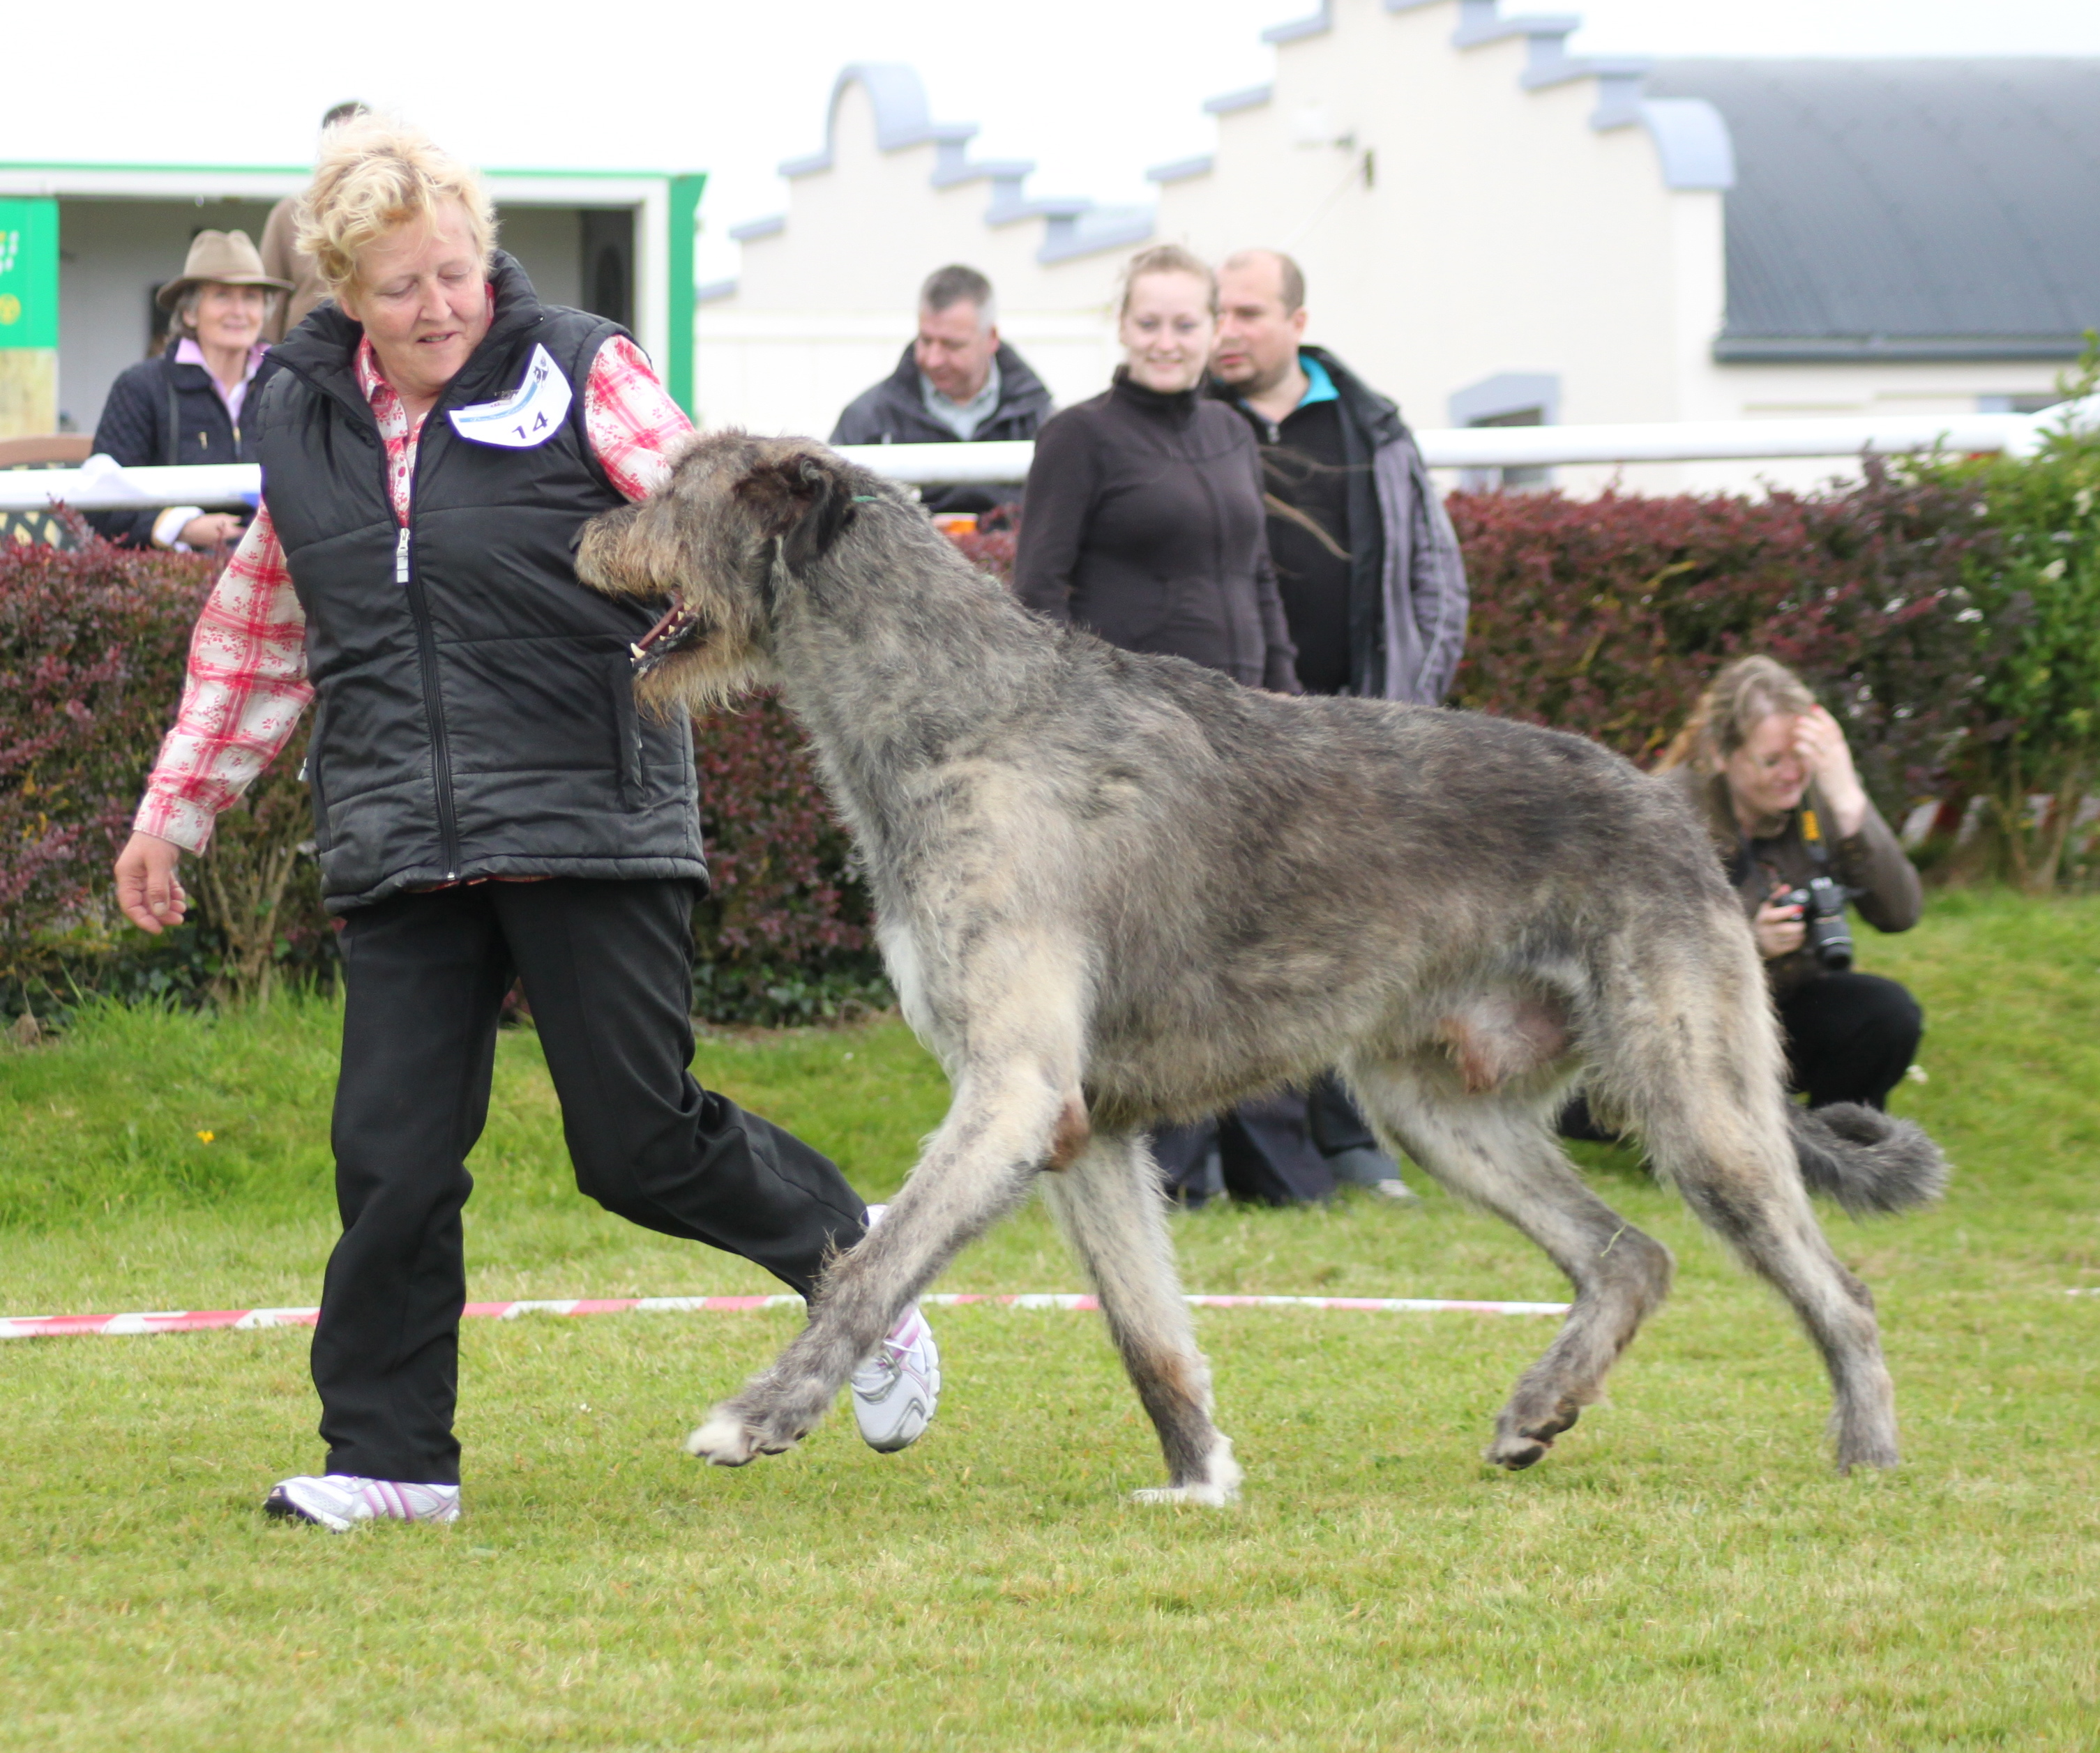 Irish Wolfhound - Wikipedia